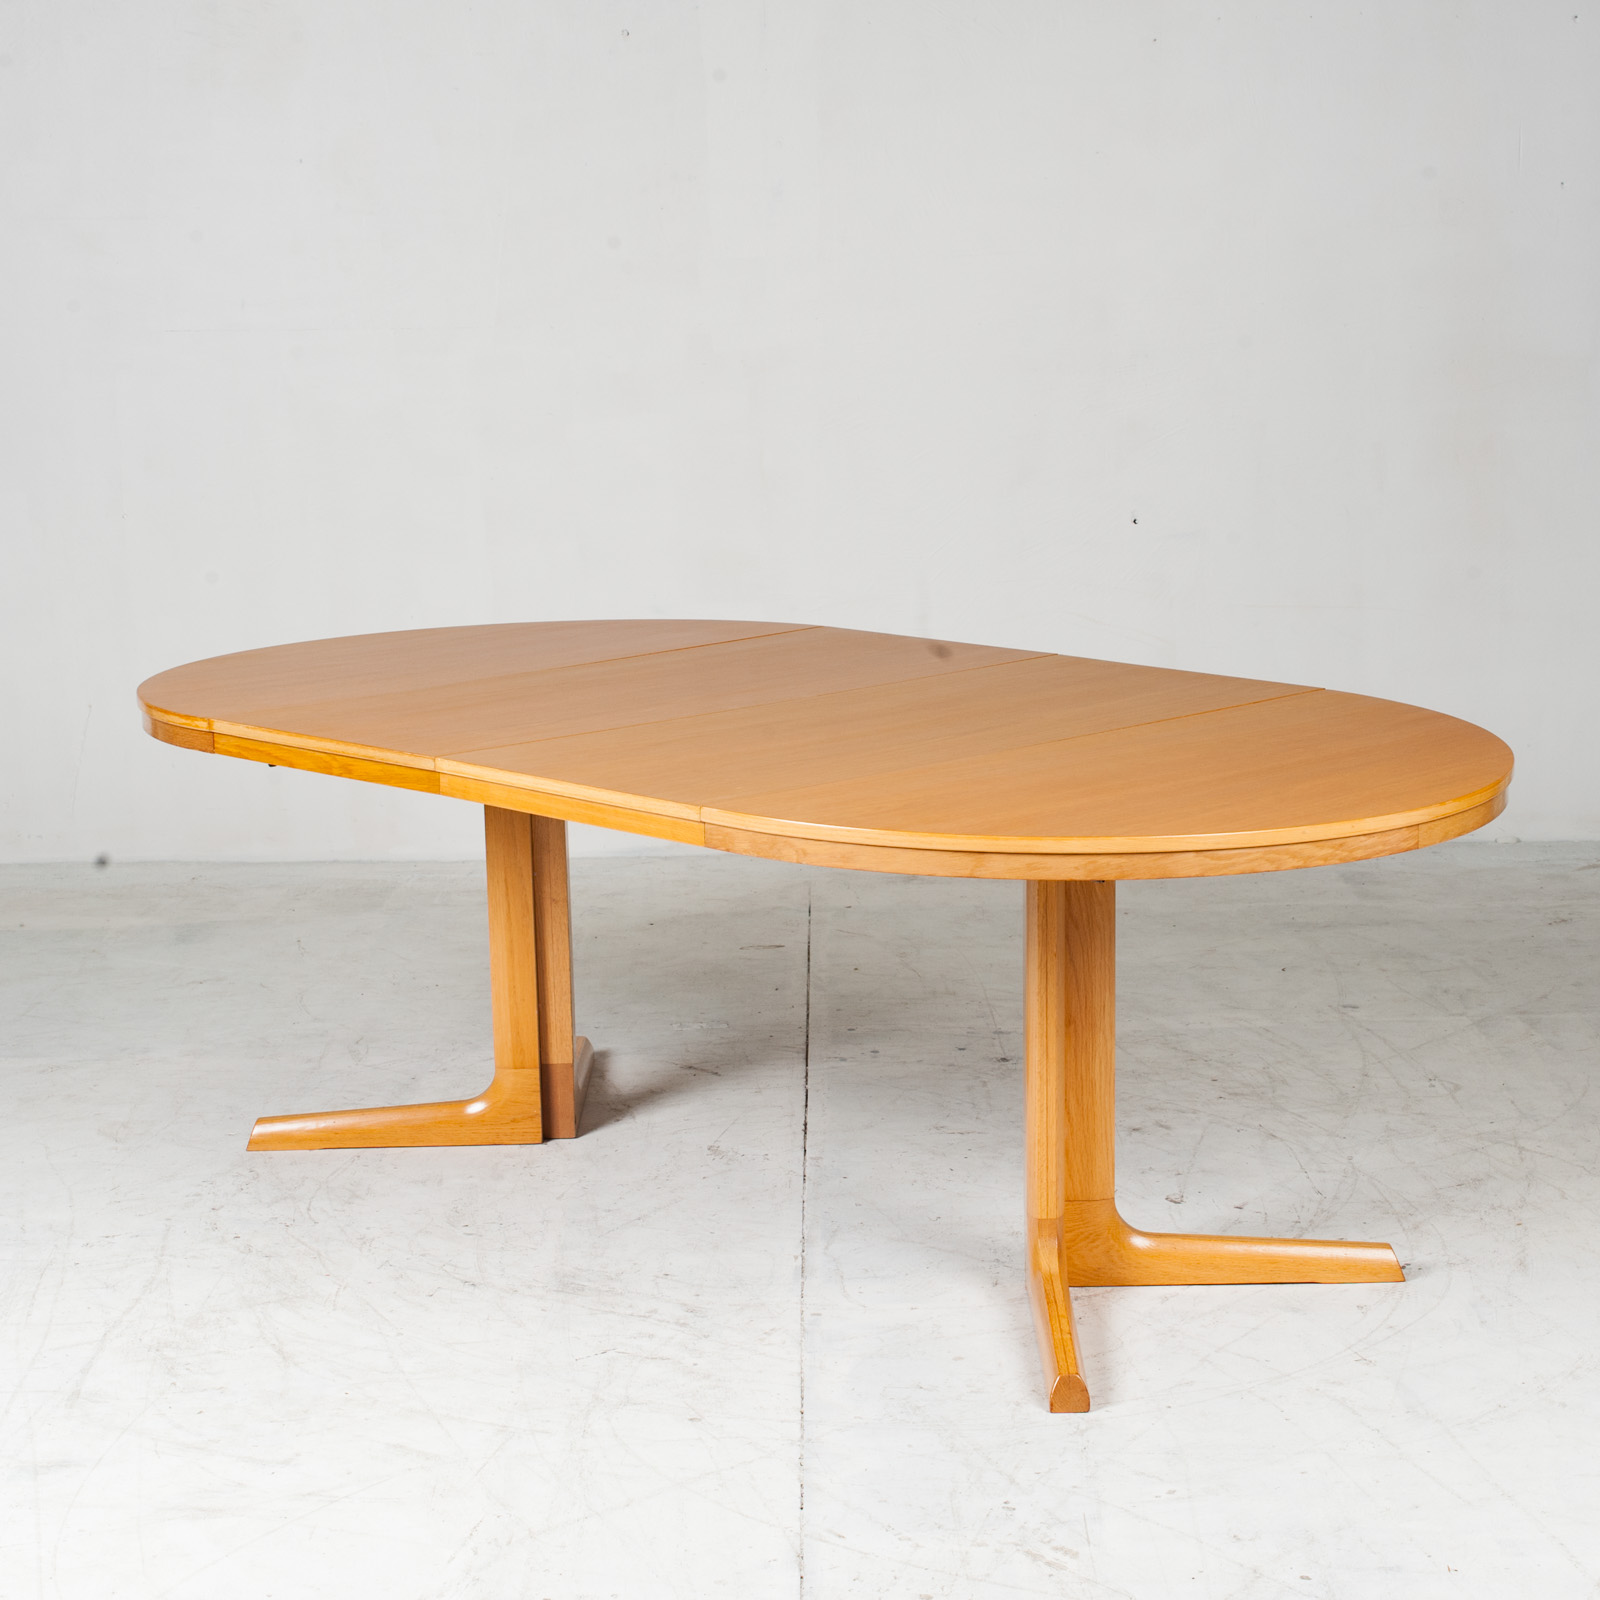 Round Dining Table In Oak With Pedestal Base And 2 Extentions 1960s Denmark 10